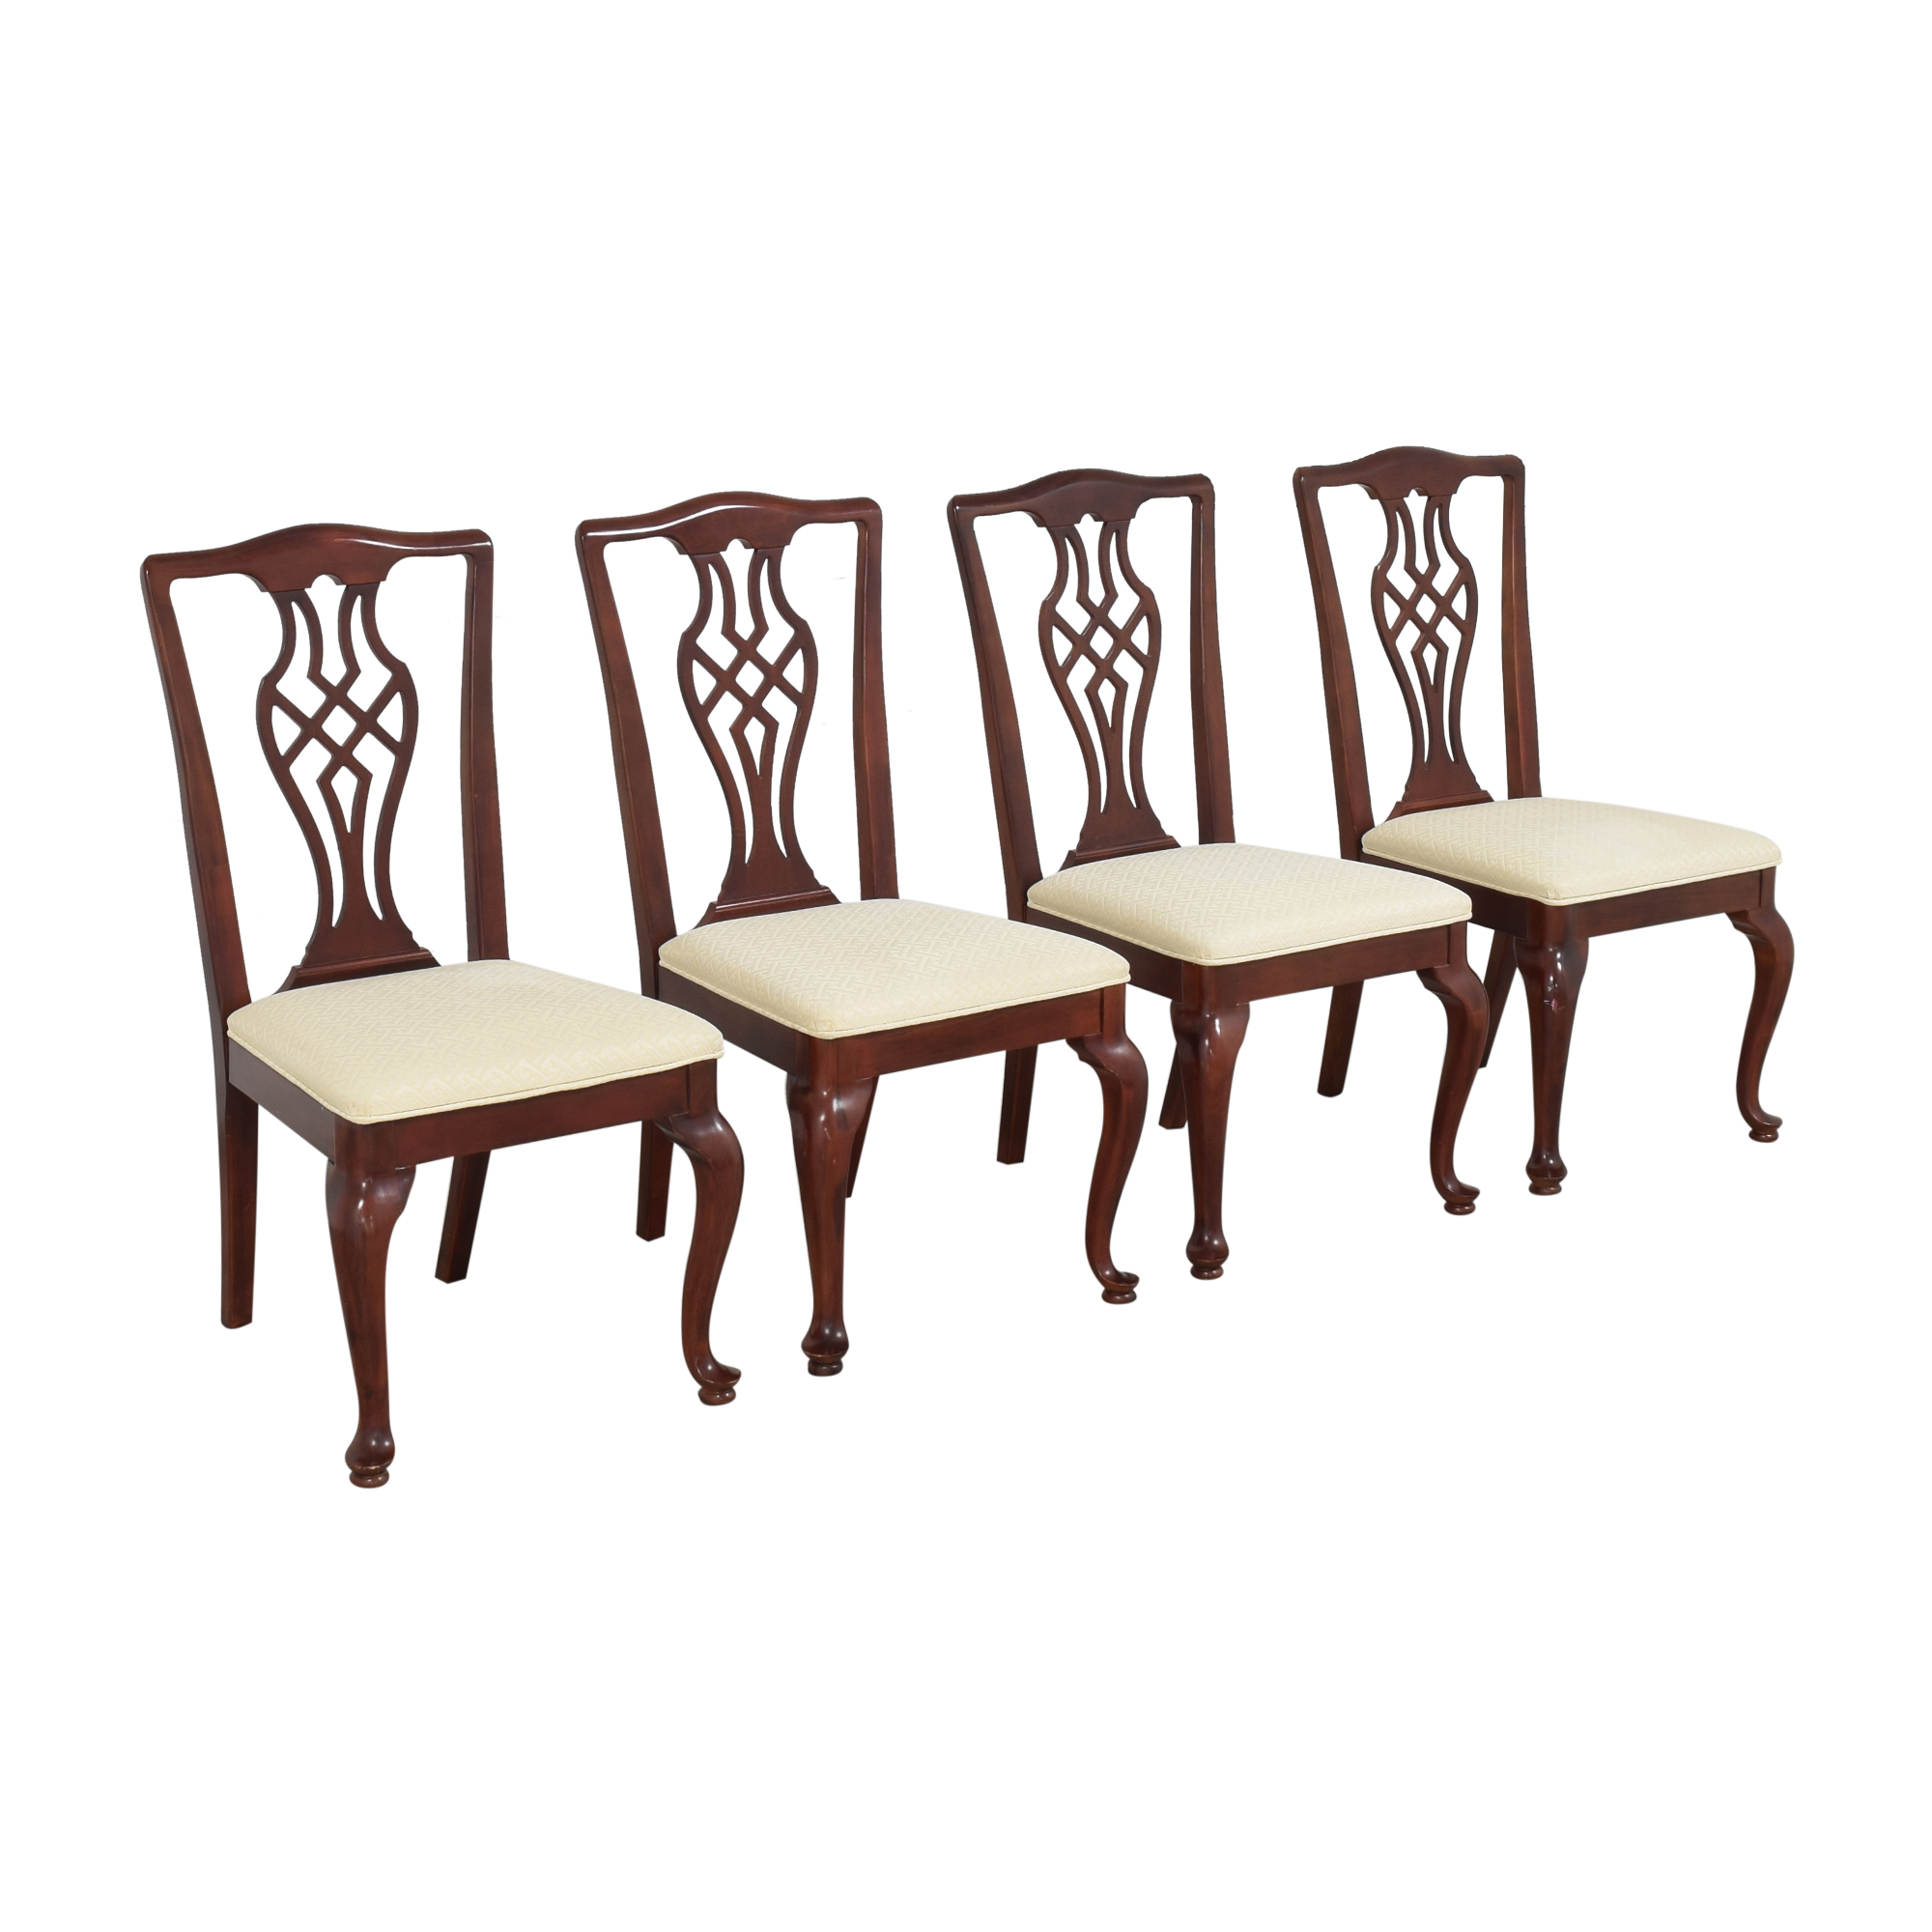 Drexel Heritage Drexel Heritage Chippendale Dining Chairs nj